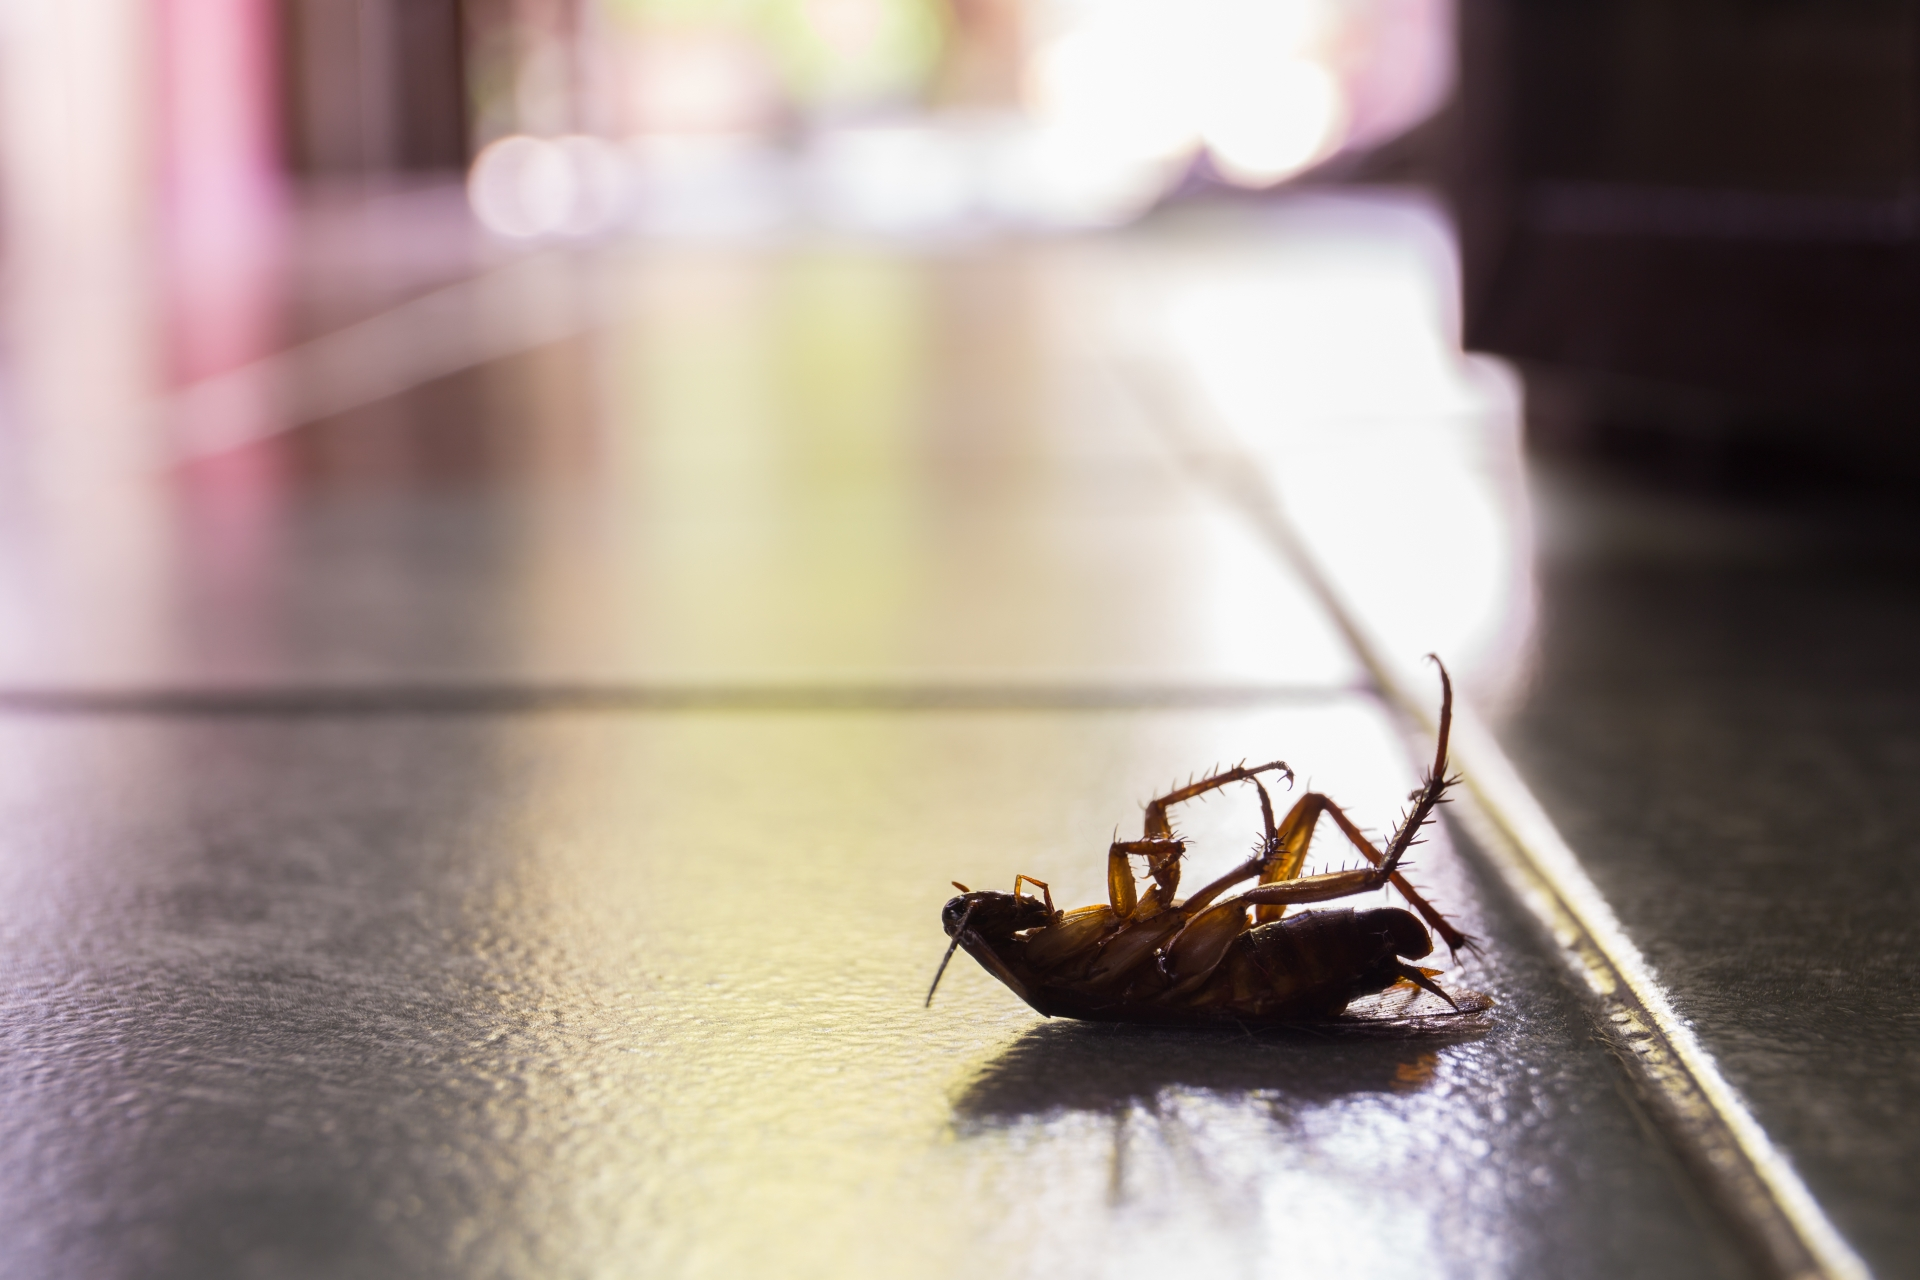 Cockroach Control, Pest Control in Woodford Green, Woodford, IG8. Call Now 020 8166 9746